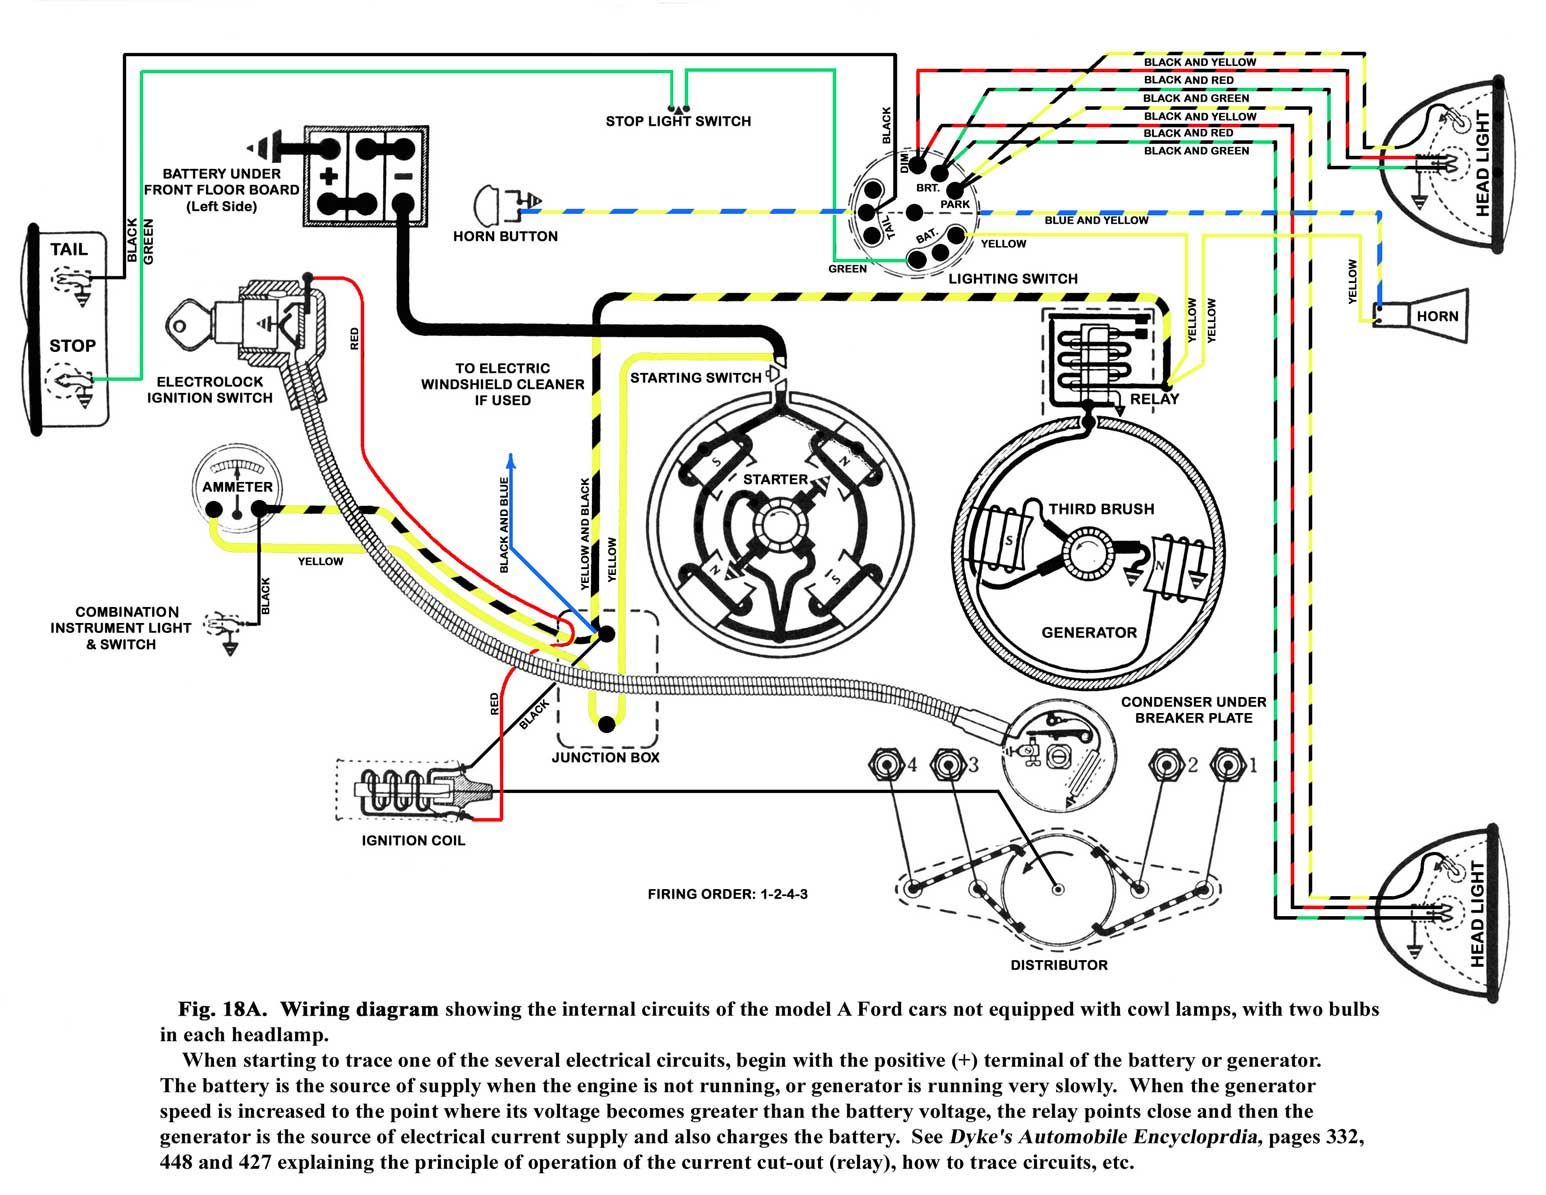 1930 Model A Ford Starter Wiring Diagram Get Free Image About 25w Audio Amplifier Circuit Using Tda2613 Pinterest Models Rh Com